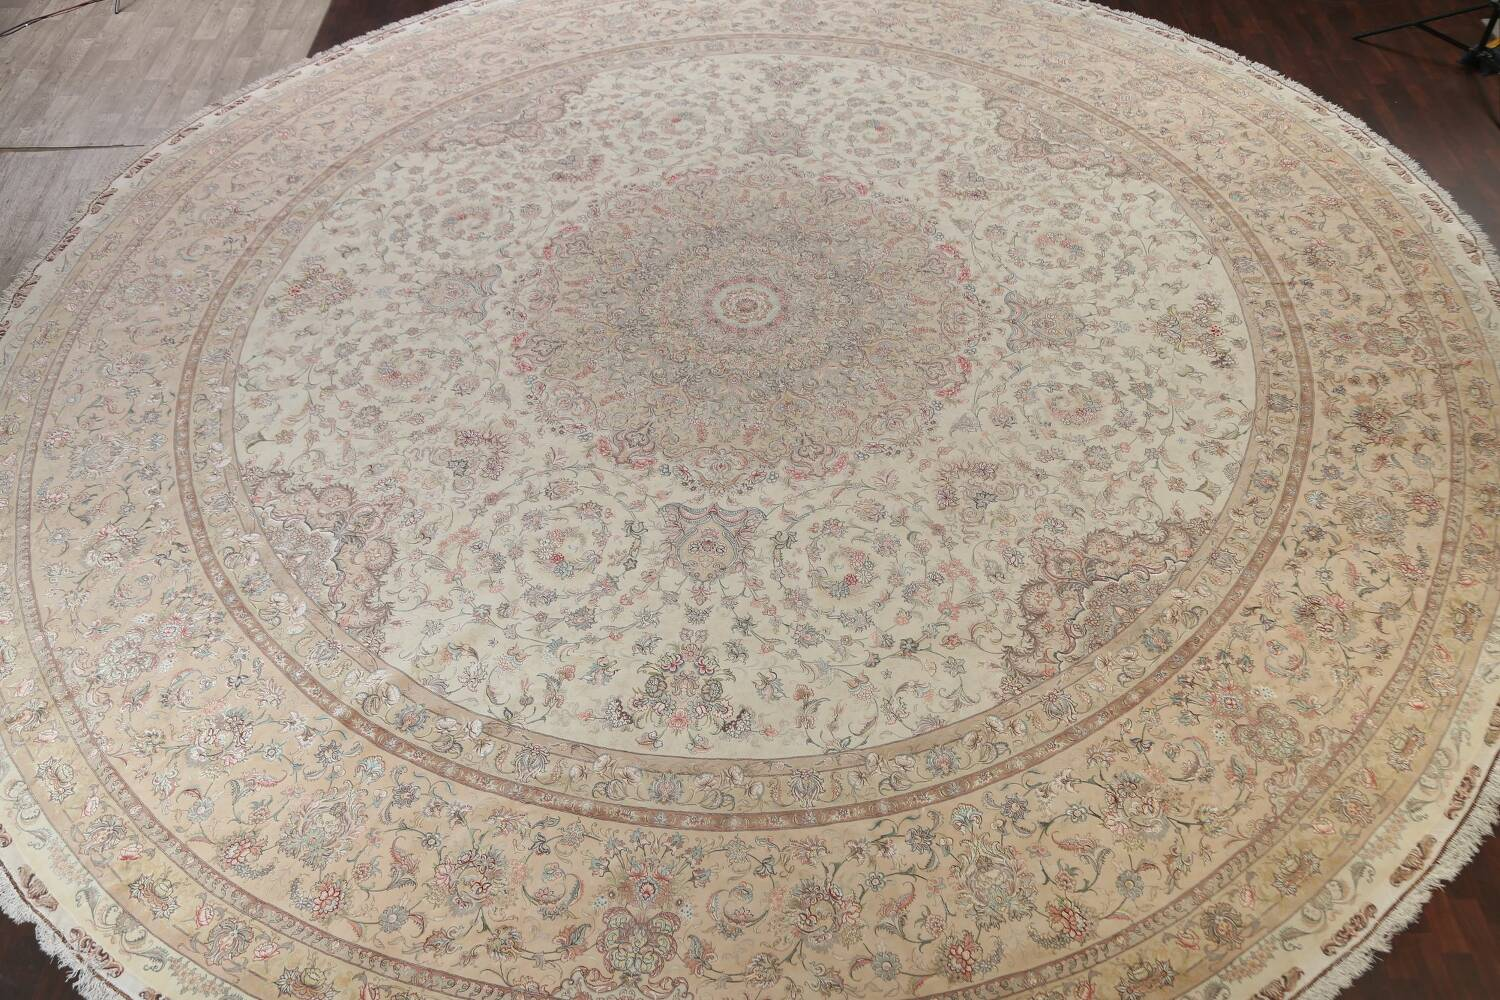 100% Vegetable Dye Floral Tabriz Persian Area Rug 22x23 Round image 3